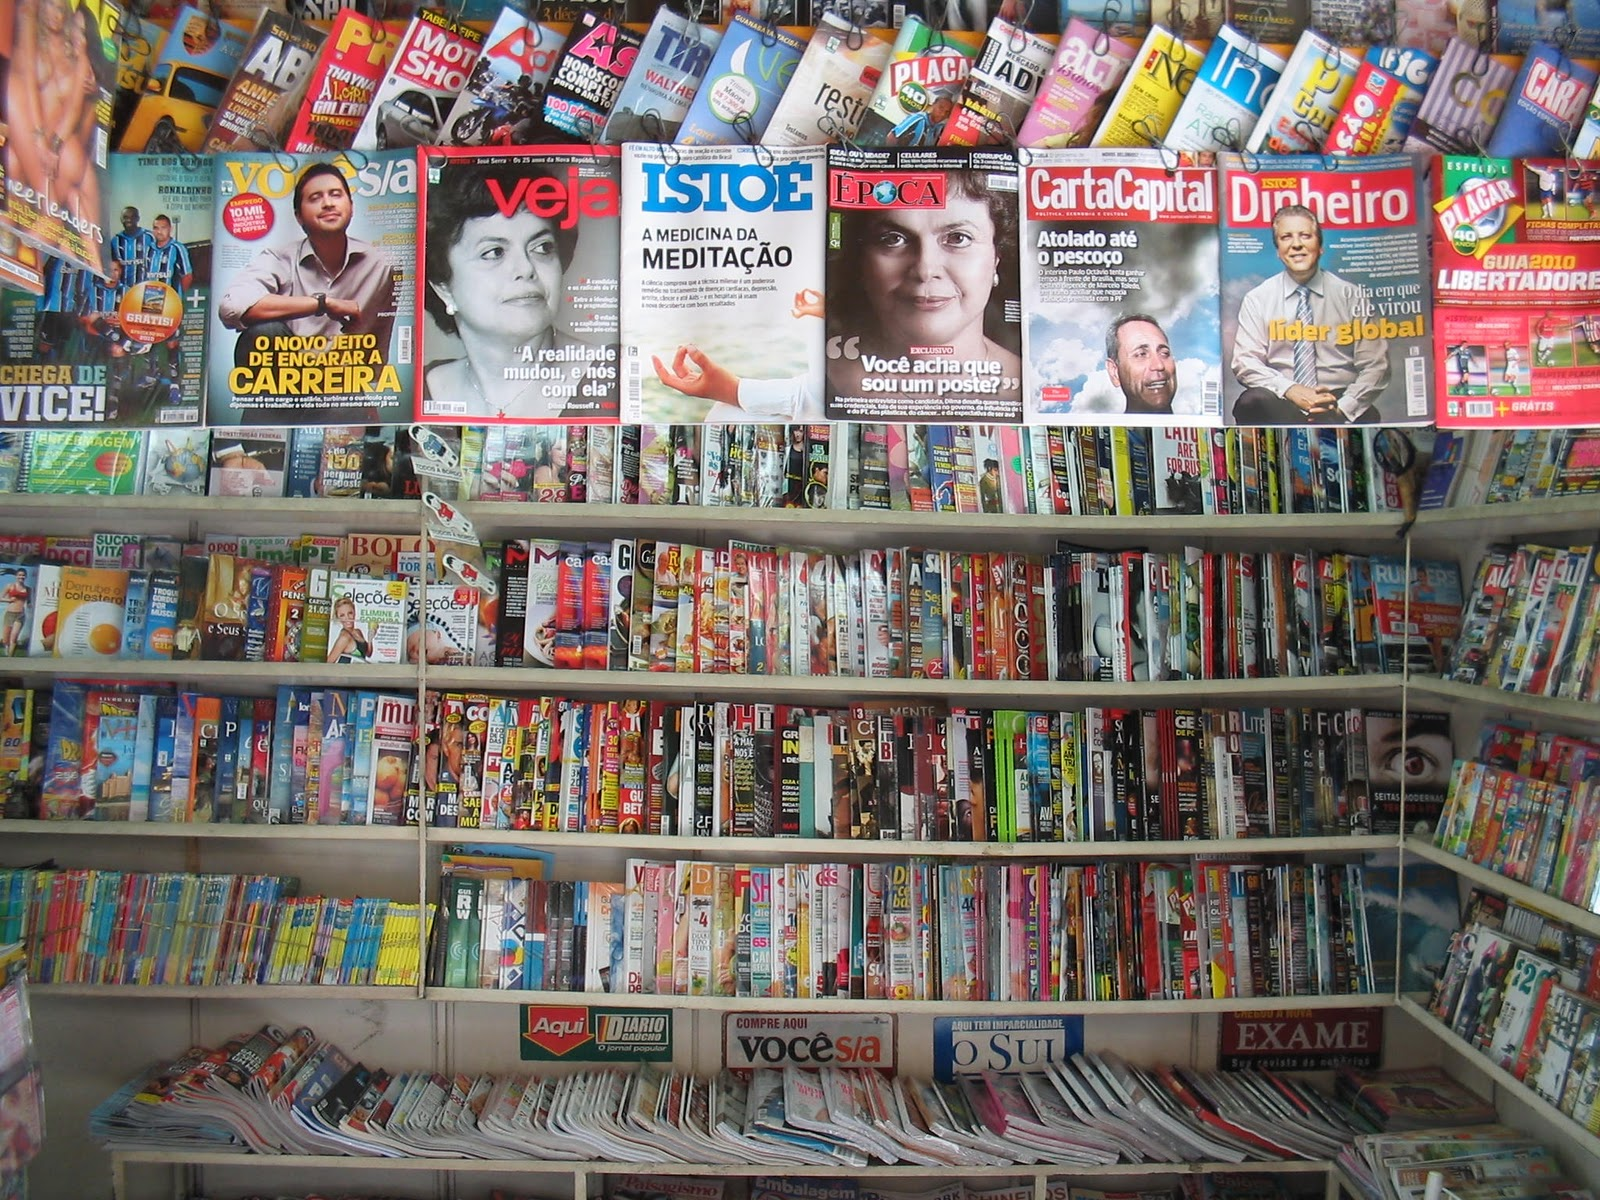 Sharpen Your Portuguese: 28 Brazilian Magazines You Can Read Online